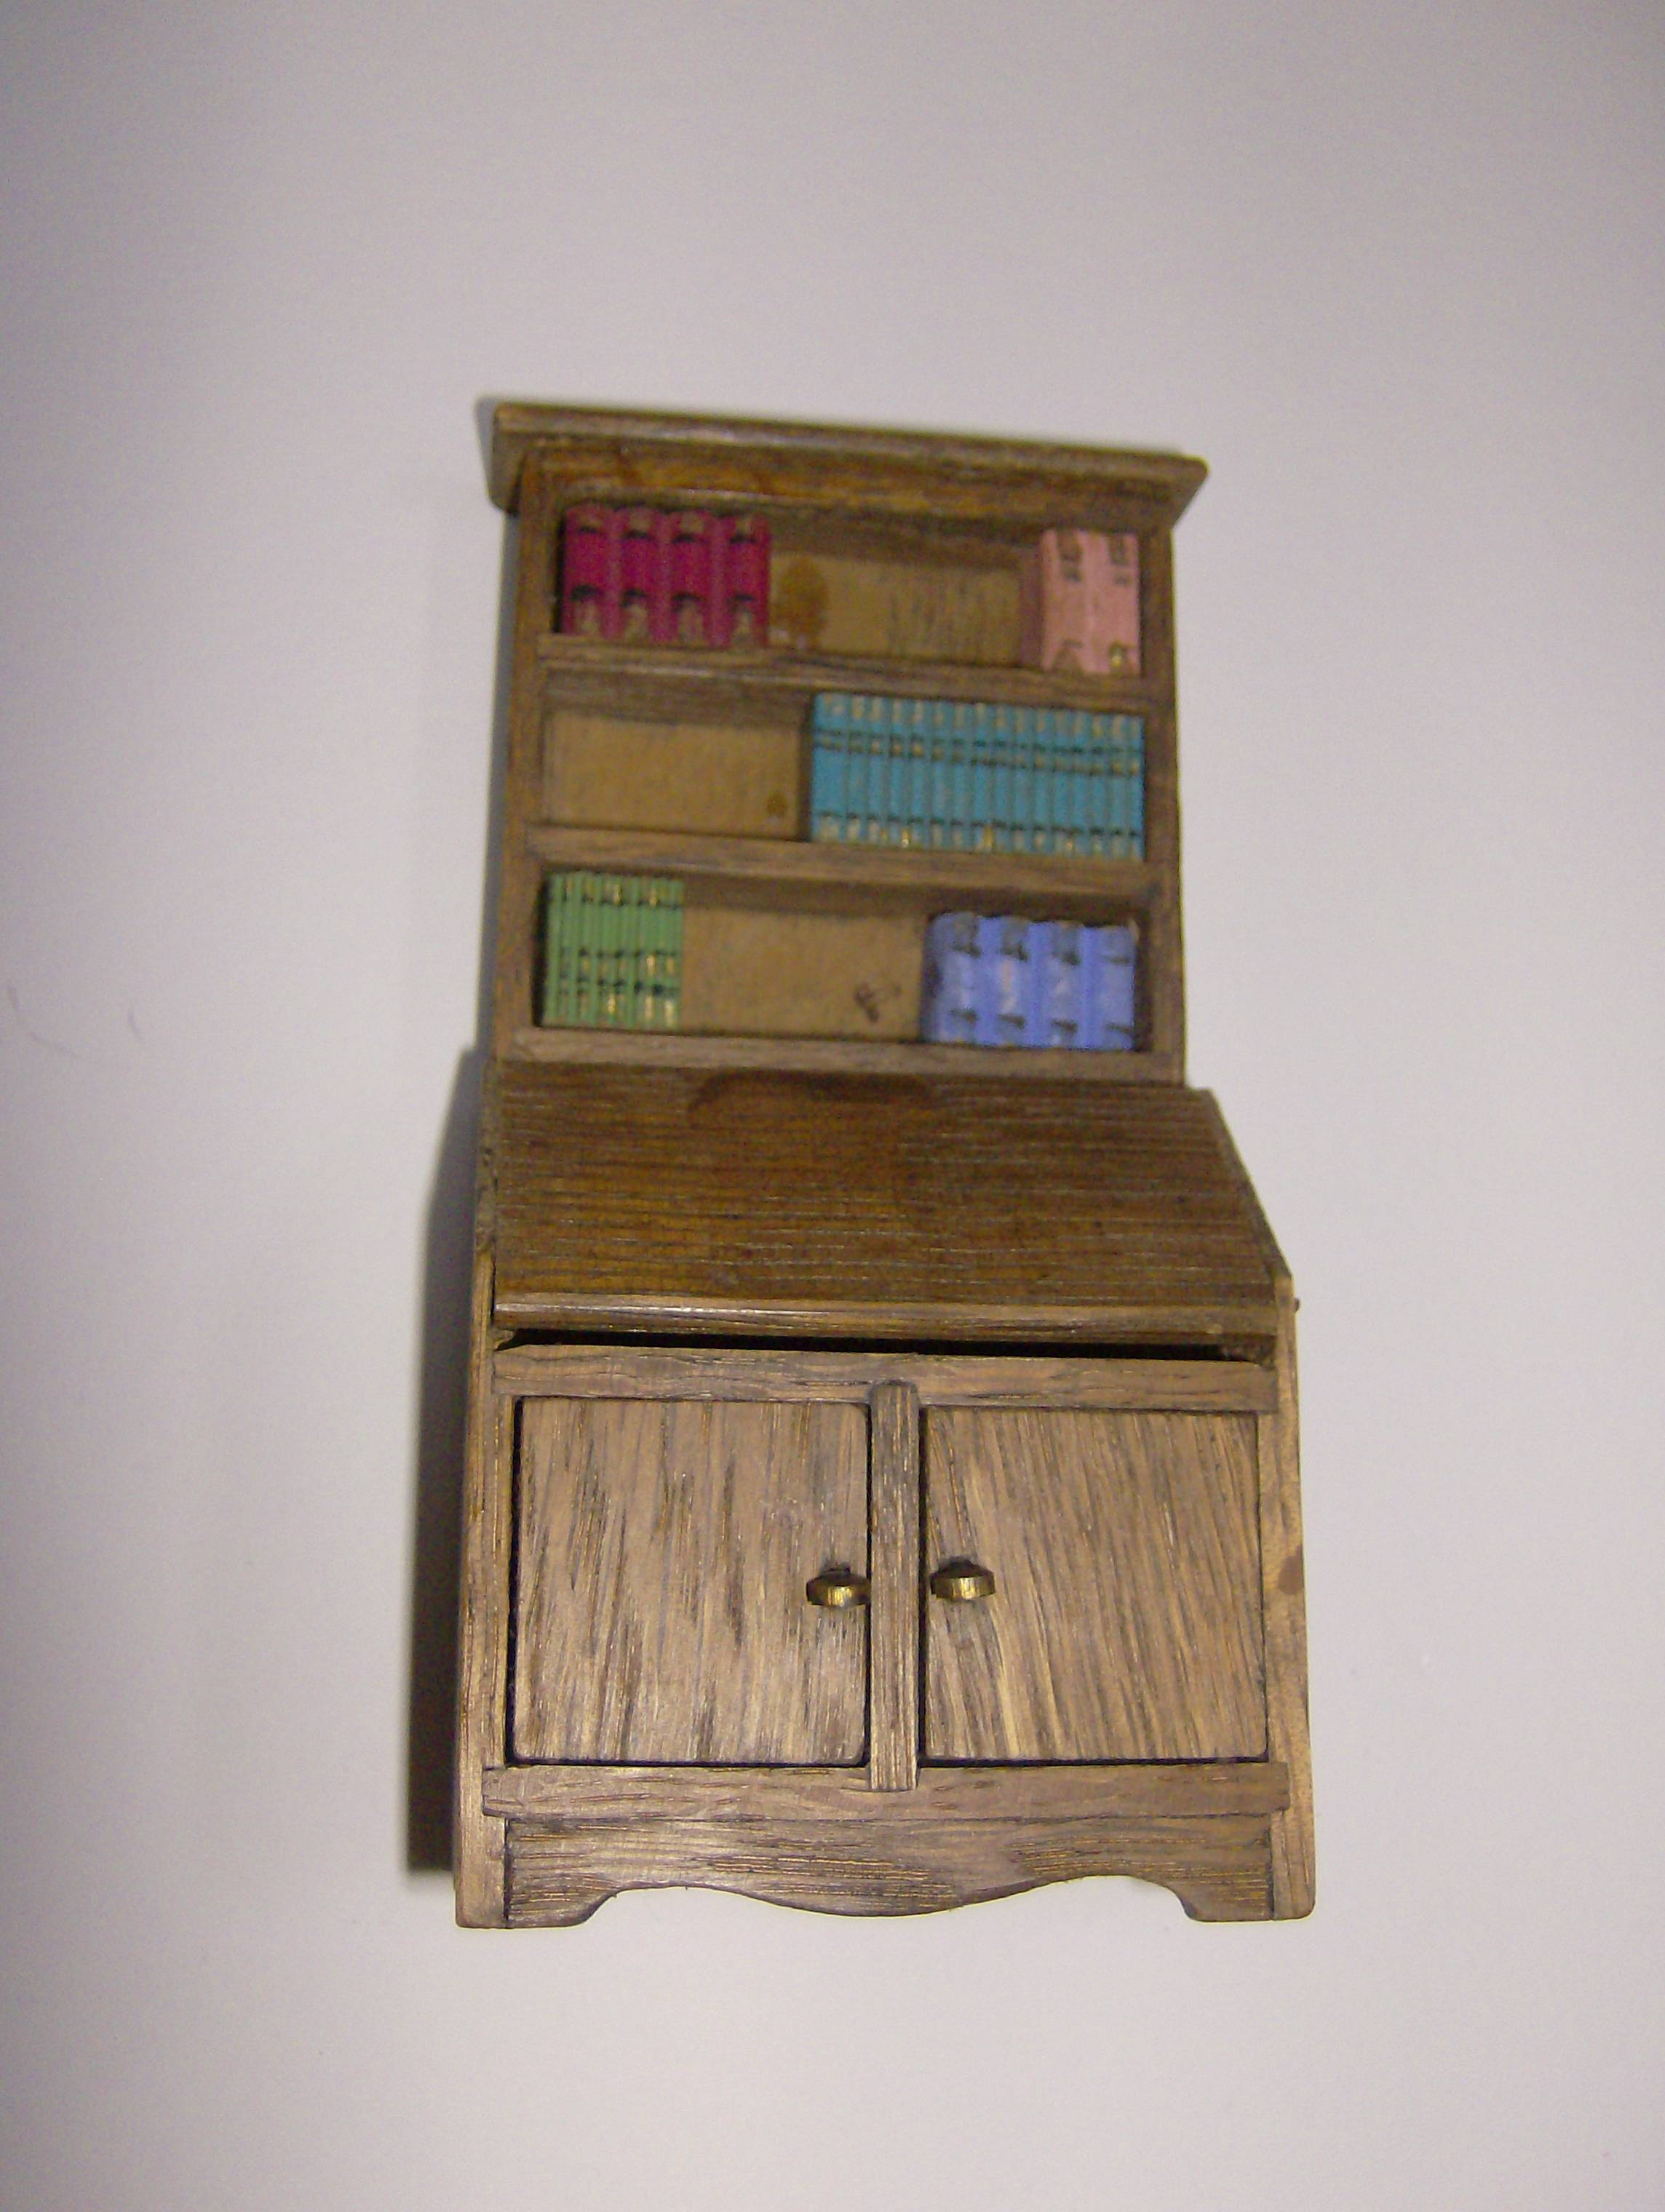 This bookcase bears a strong resemblance to the Basset Lowke one, even down to the books.